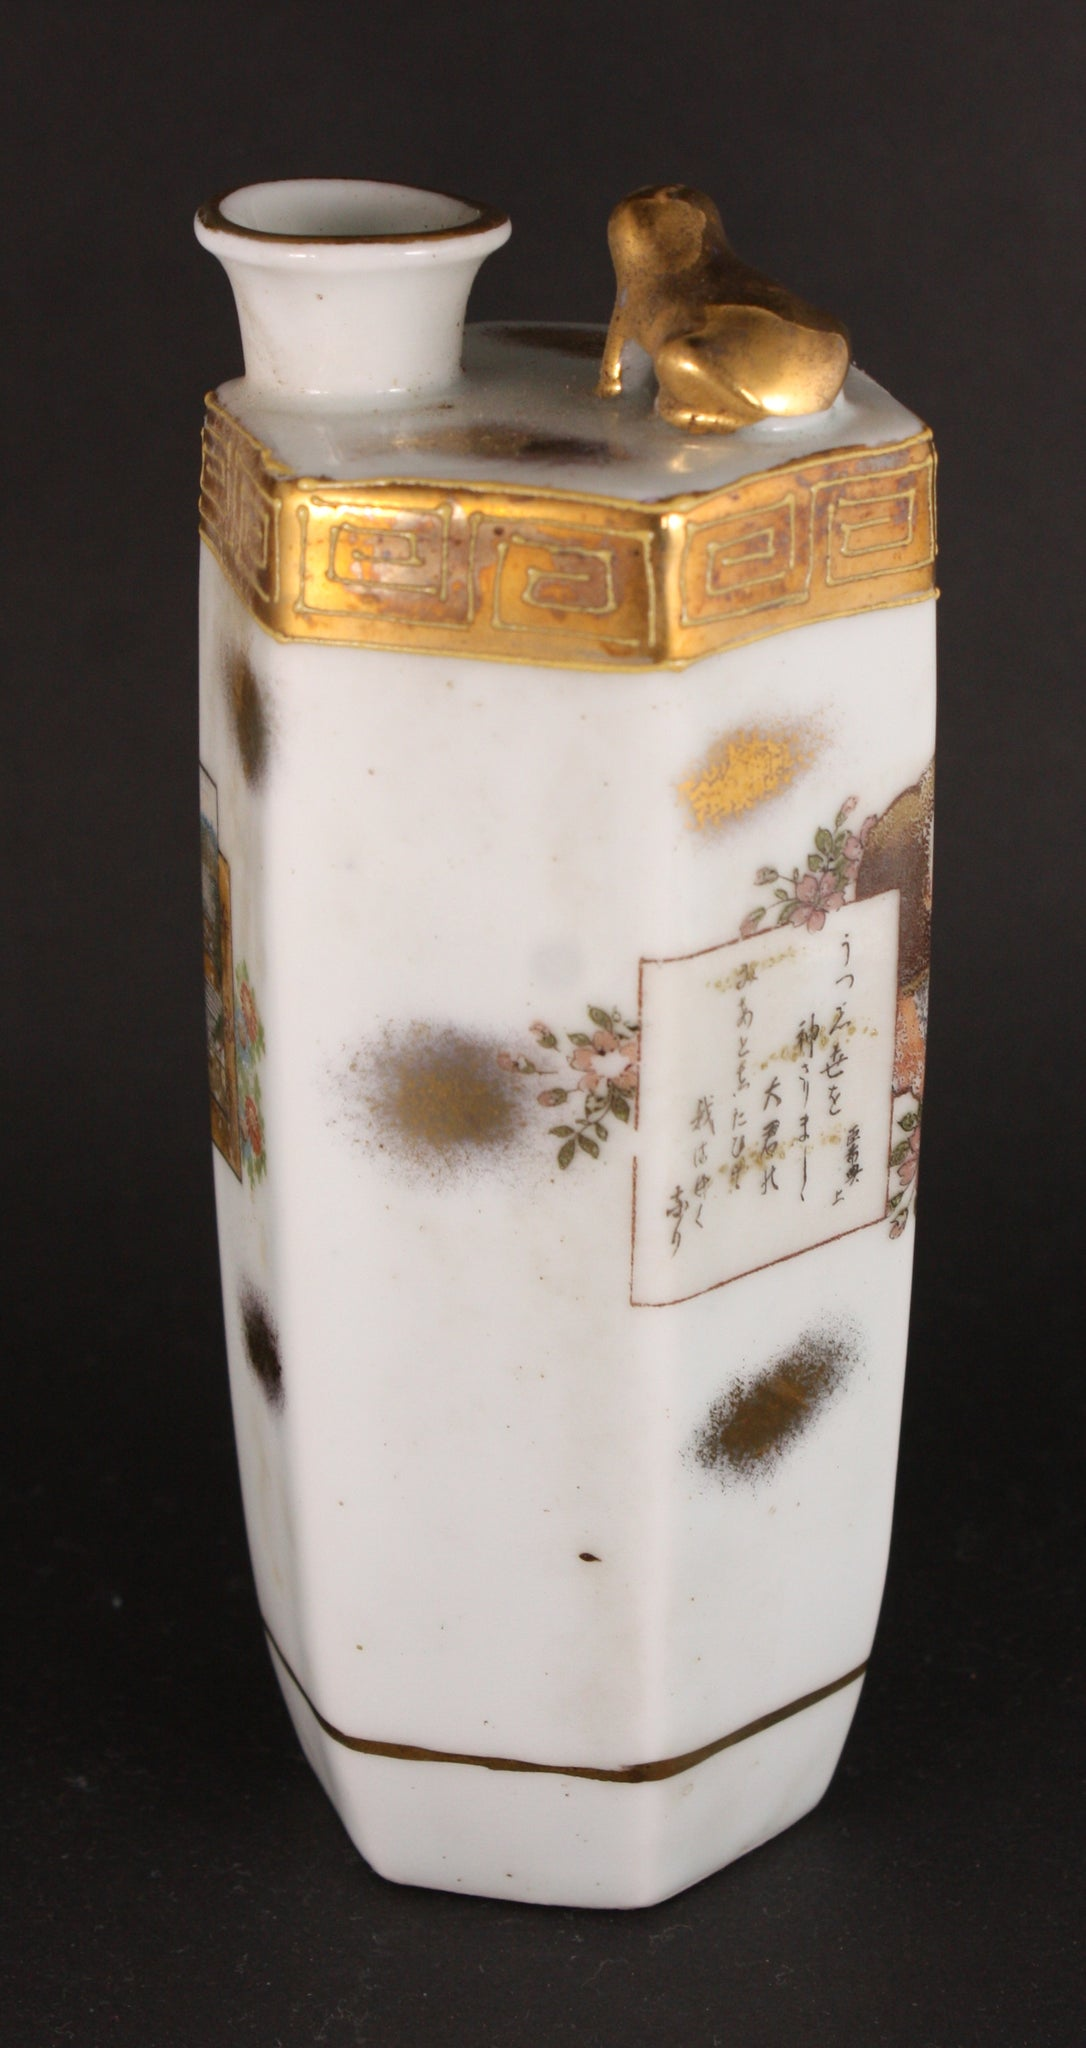 Very Rare Antique Japanese Military General Nogi Death Whistling Sake Bottle